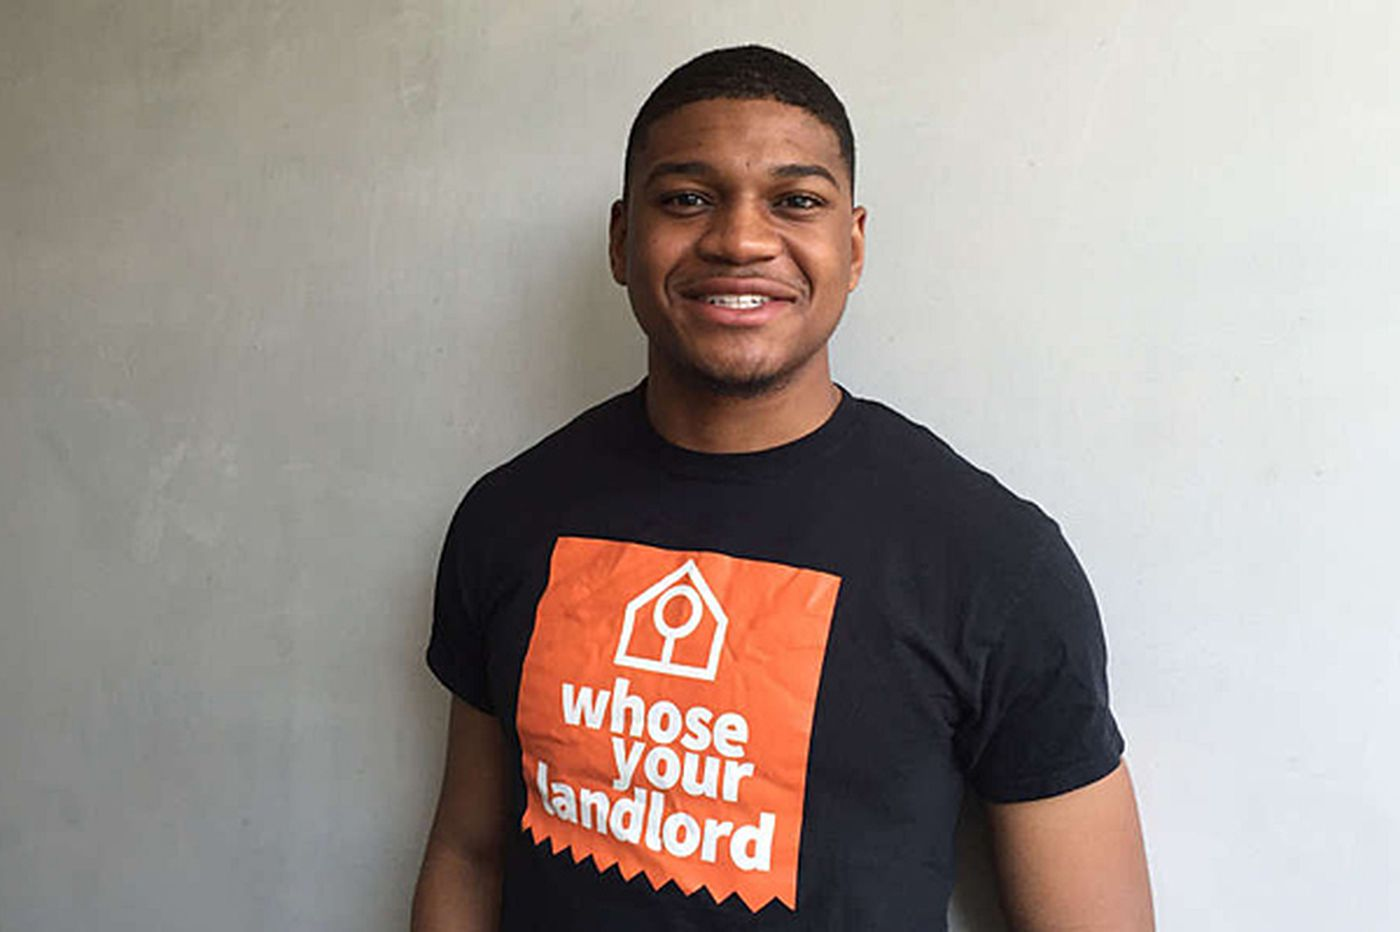 Philly startup 'Whose Your Landlord' is like Yelp for landlords